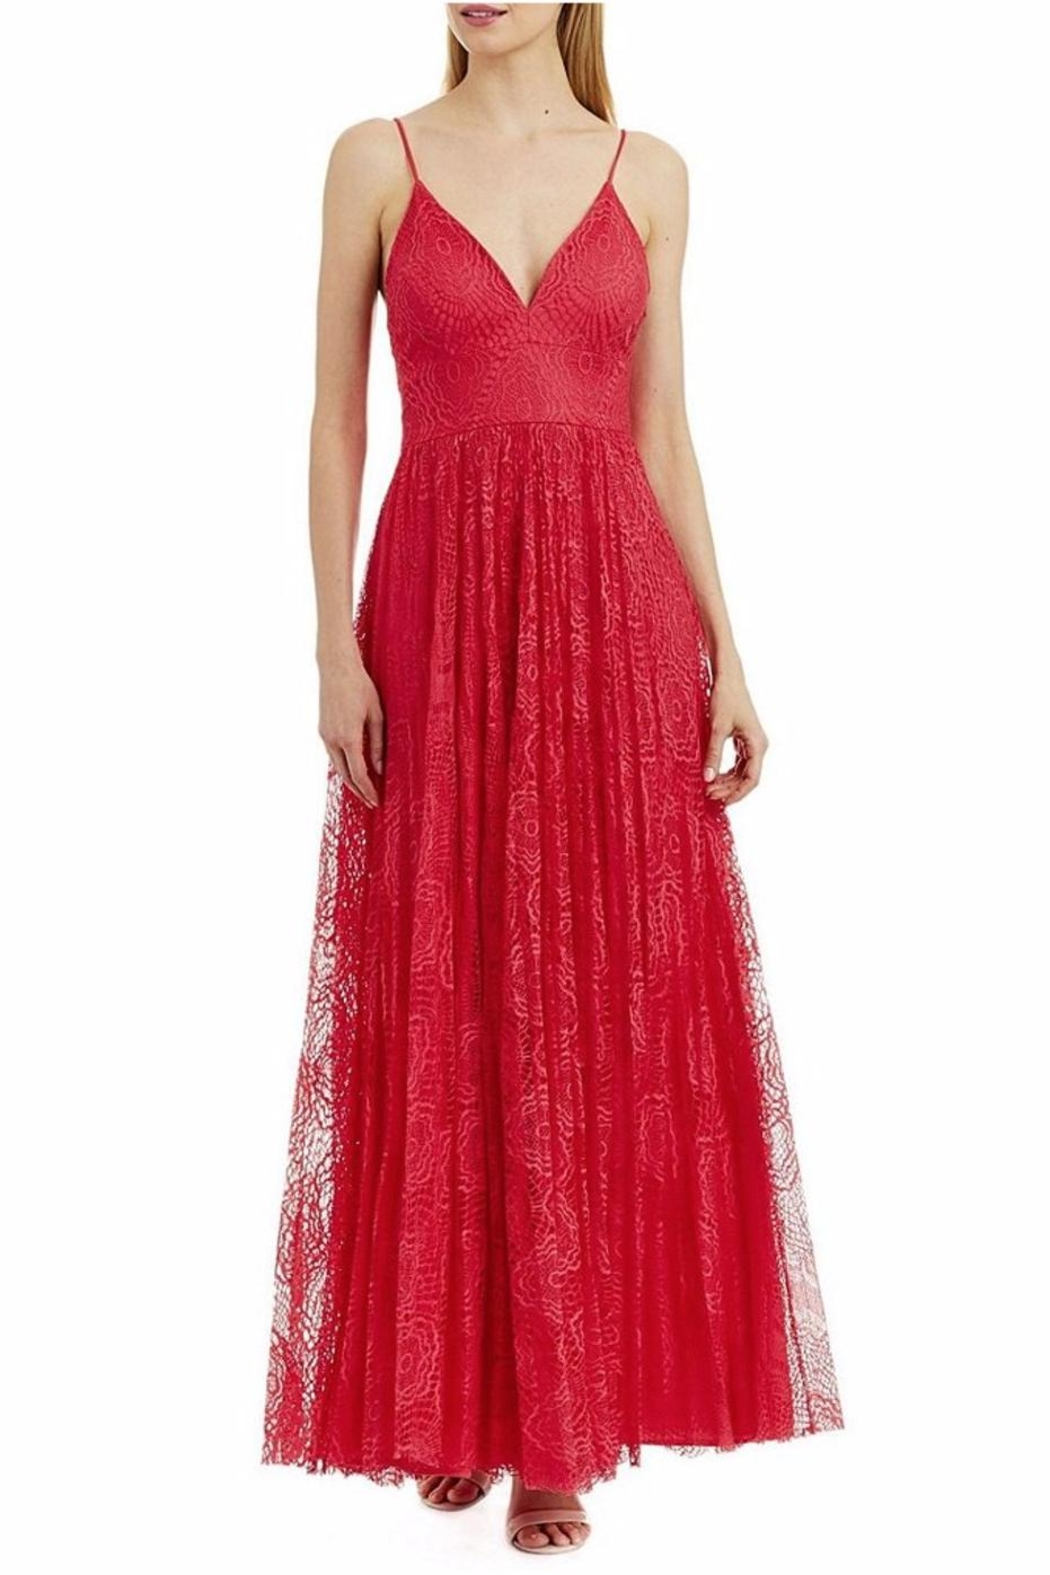 Nicole Miller Sweetheart Lace Dress from Ohio by e.j. hannah ...